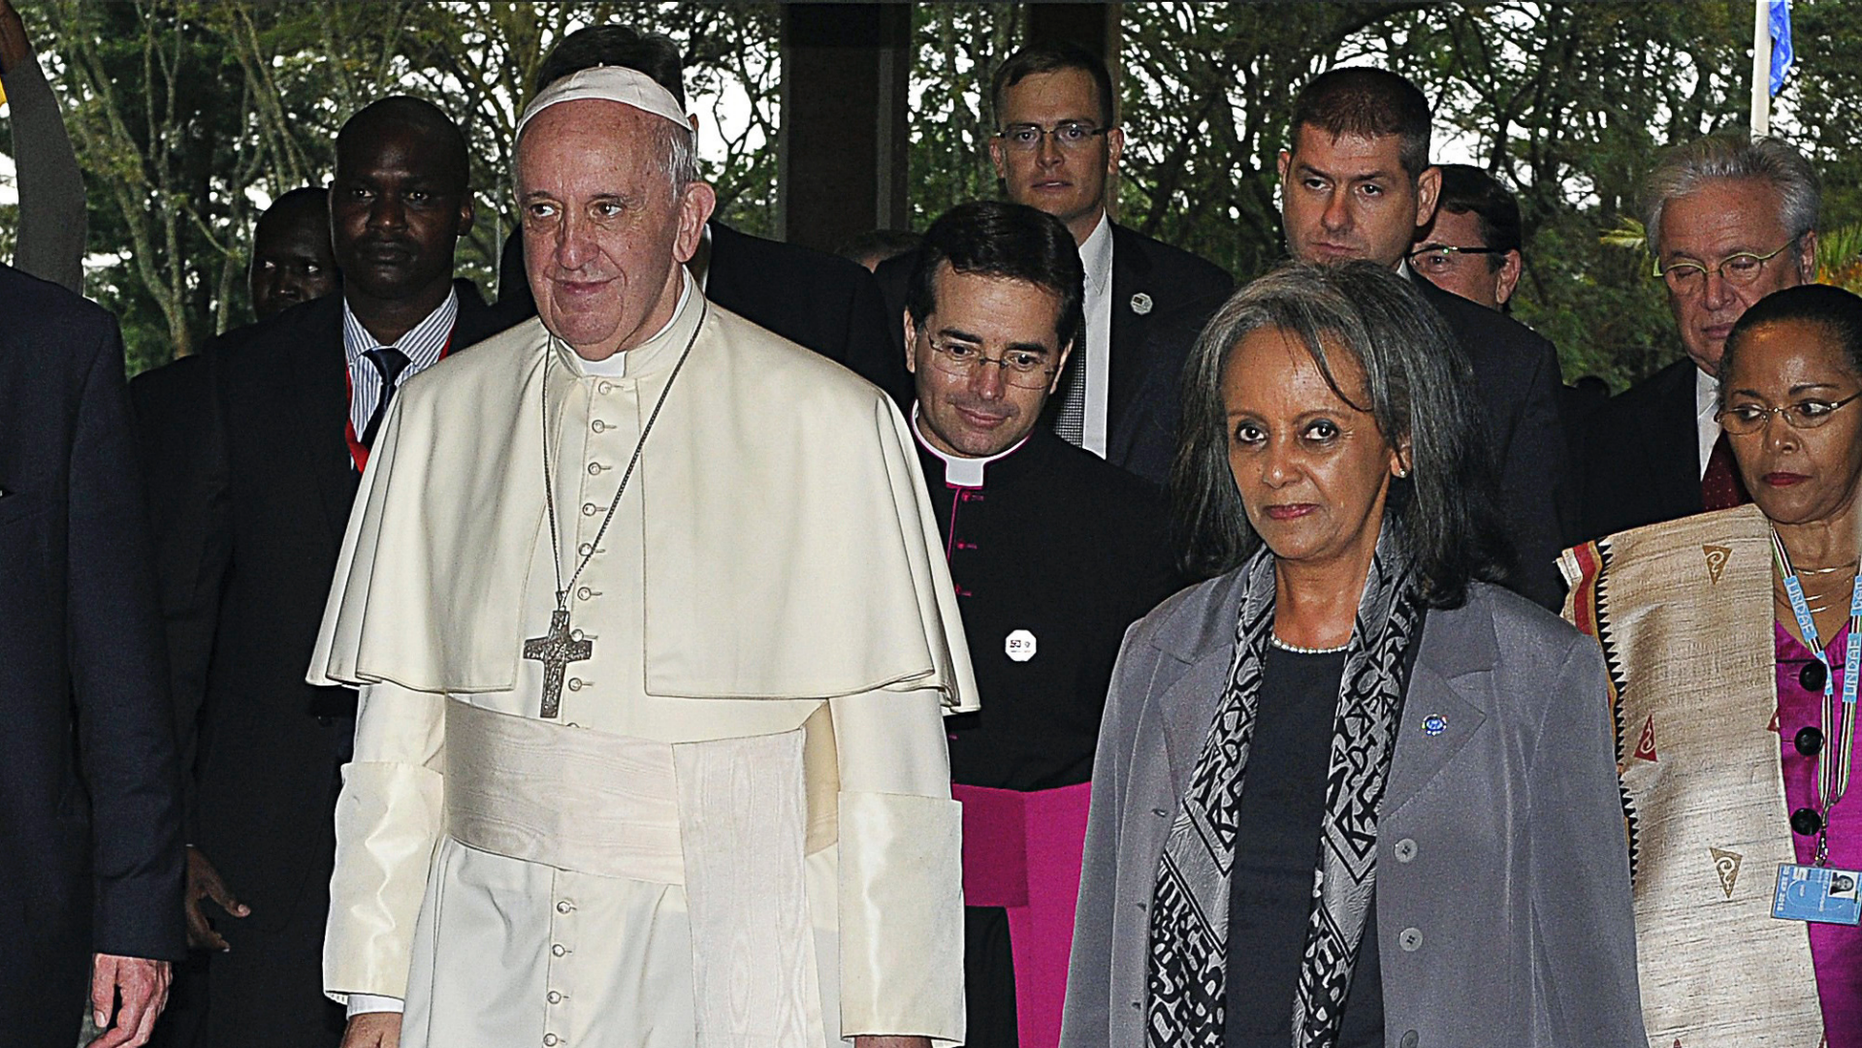 FILE - In this Thursday, Nov. 26, 2015 file photo, Pope Francis walks next to then Director-General of the United Nations Office at Nairobi (UNON) Sahle-Work Zewde, right, upon his arrival there in Nairobi, Kenya. Ethiopian lawmakers unanimously elected the seasoned diplomat Sahle-Work Zewde as the country's first female president, a largely ceremonial post, on Thursday, Oct. 25, 2018. (Simon Maina/Pool via AP, File)